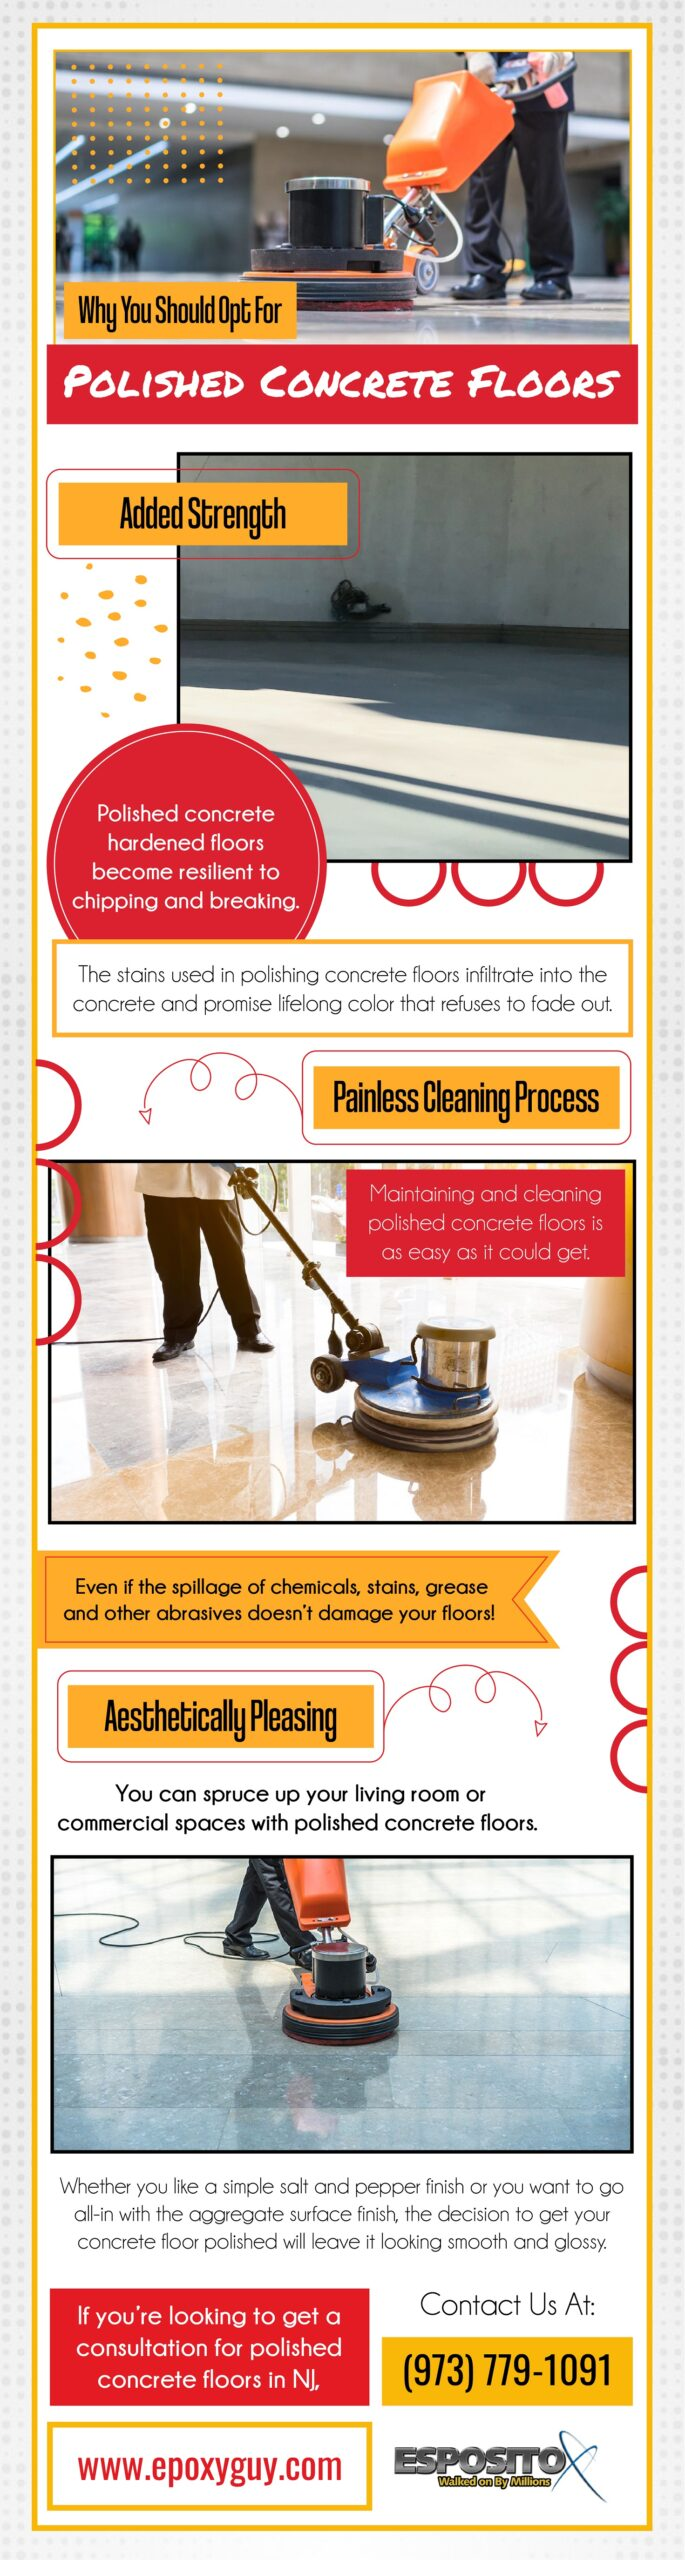 WHY You should opt for polished concrete floors - info